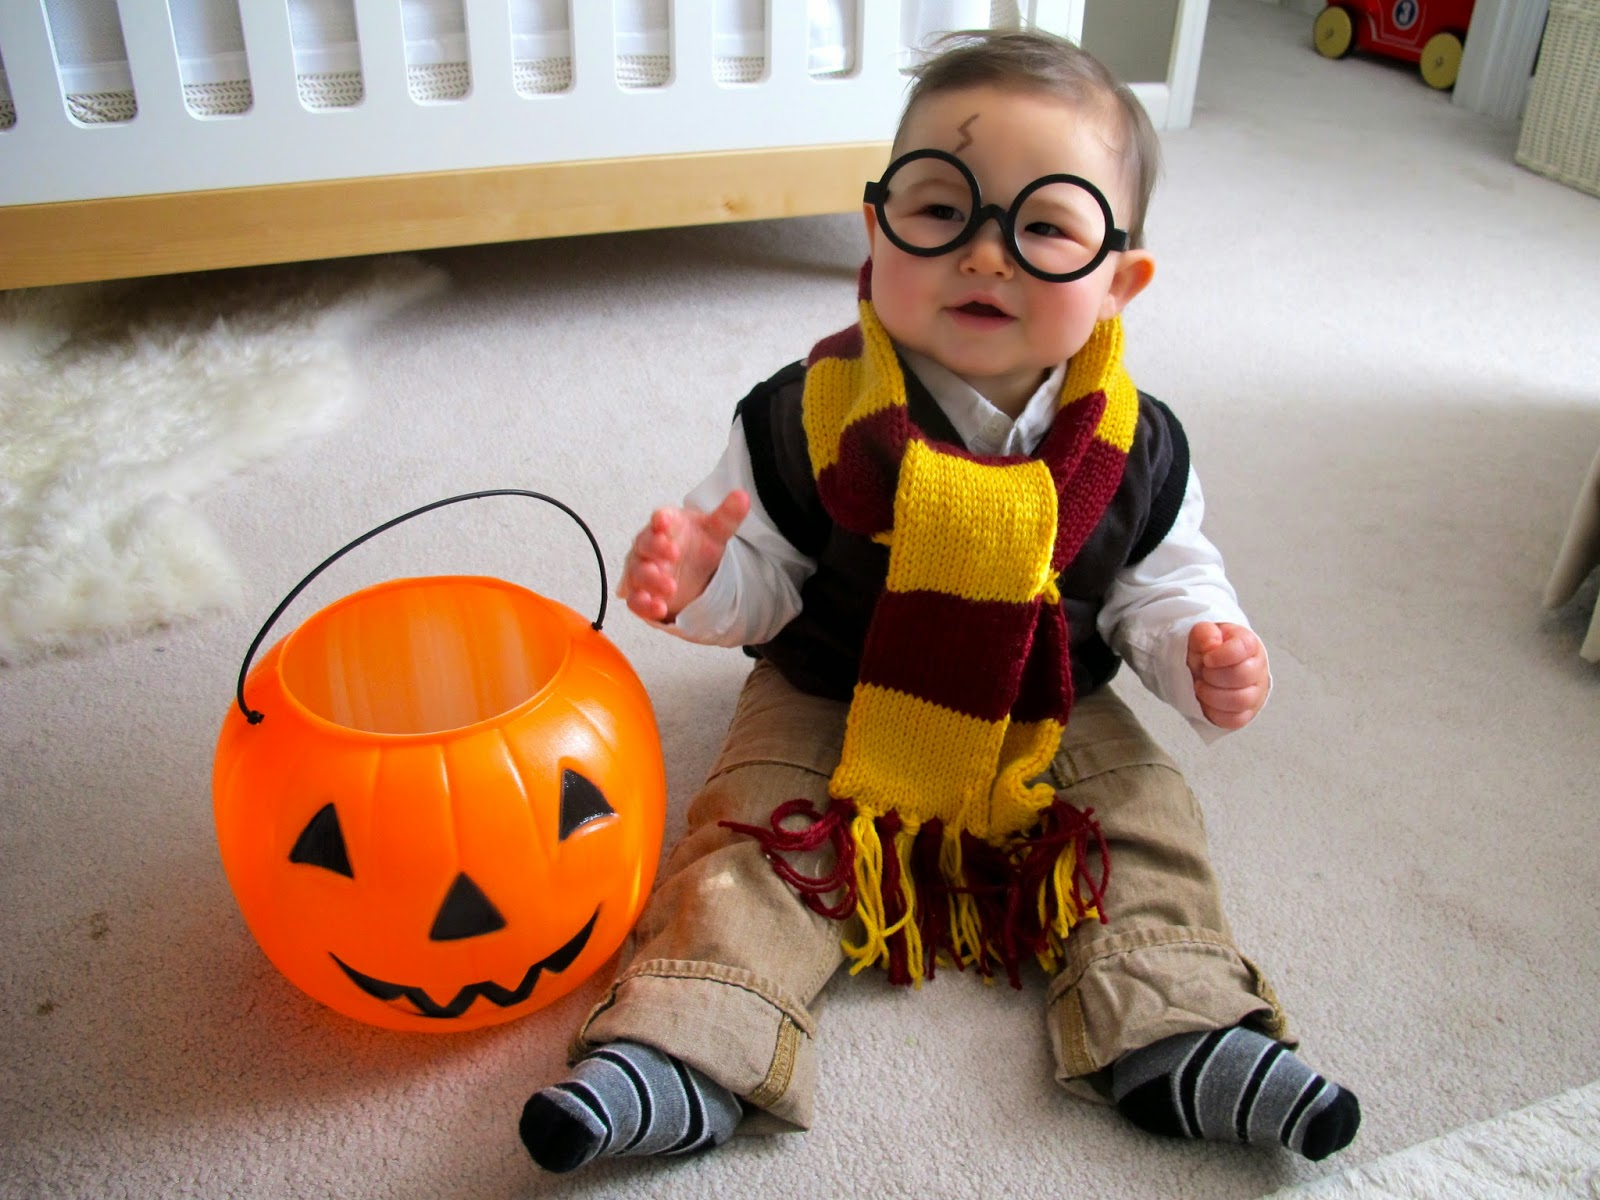 Check Out These Creative Baby Costumes All Kinds